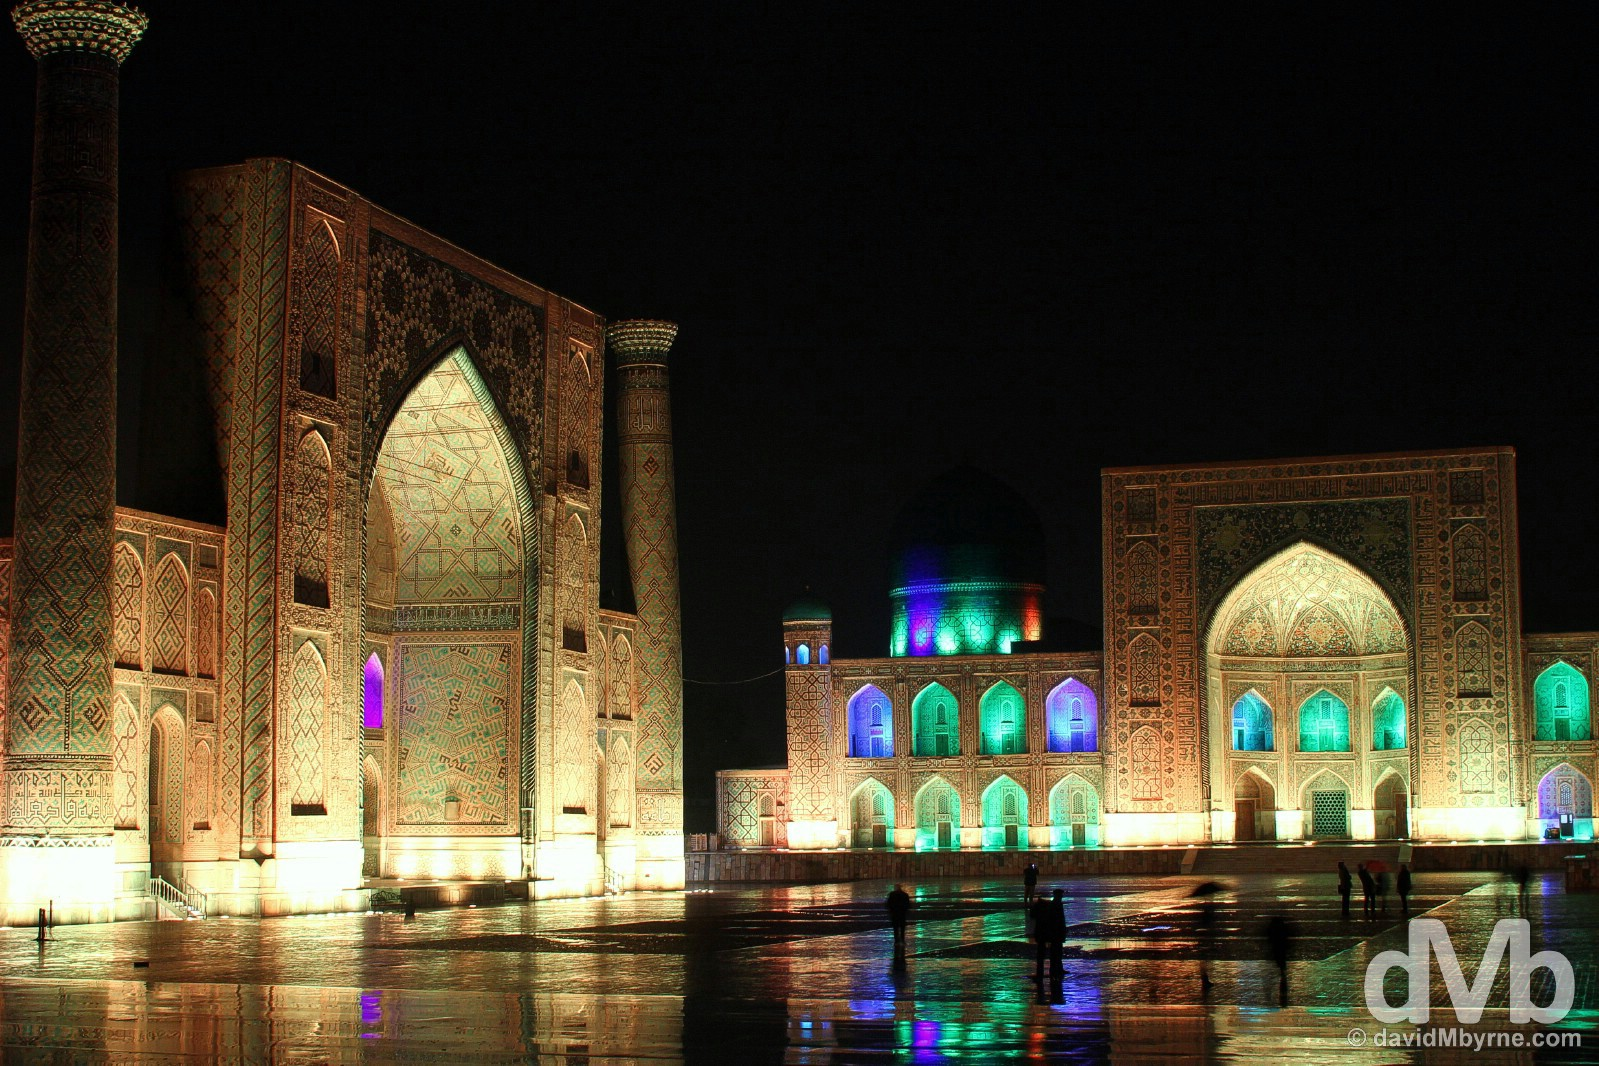 Sound & Light Show at the The Registan in Samarkand, Uzbekistan. March 7, 2015.